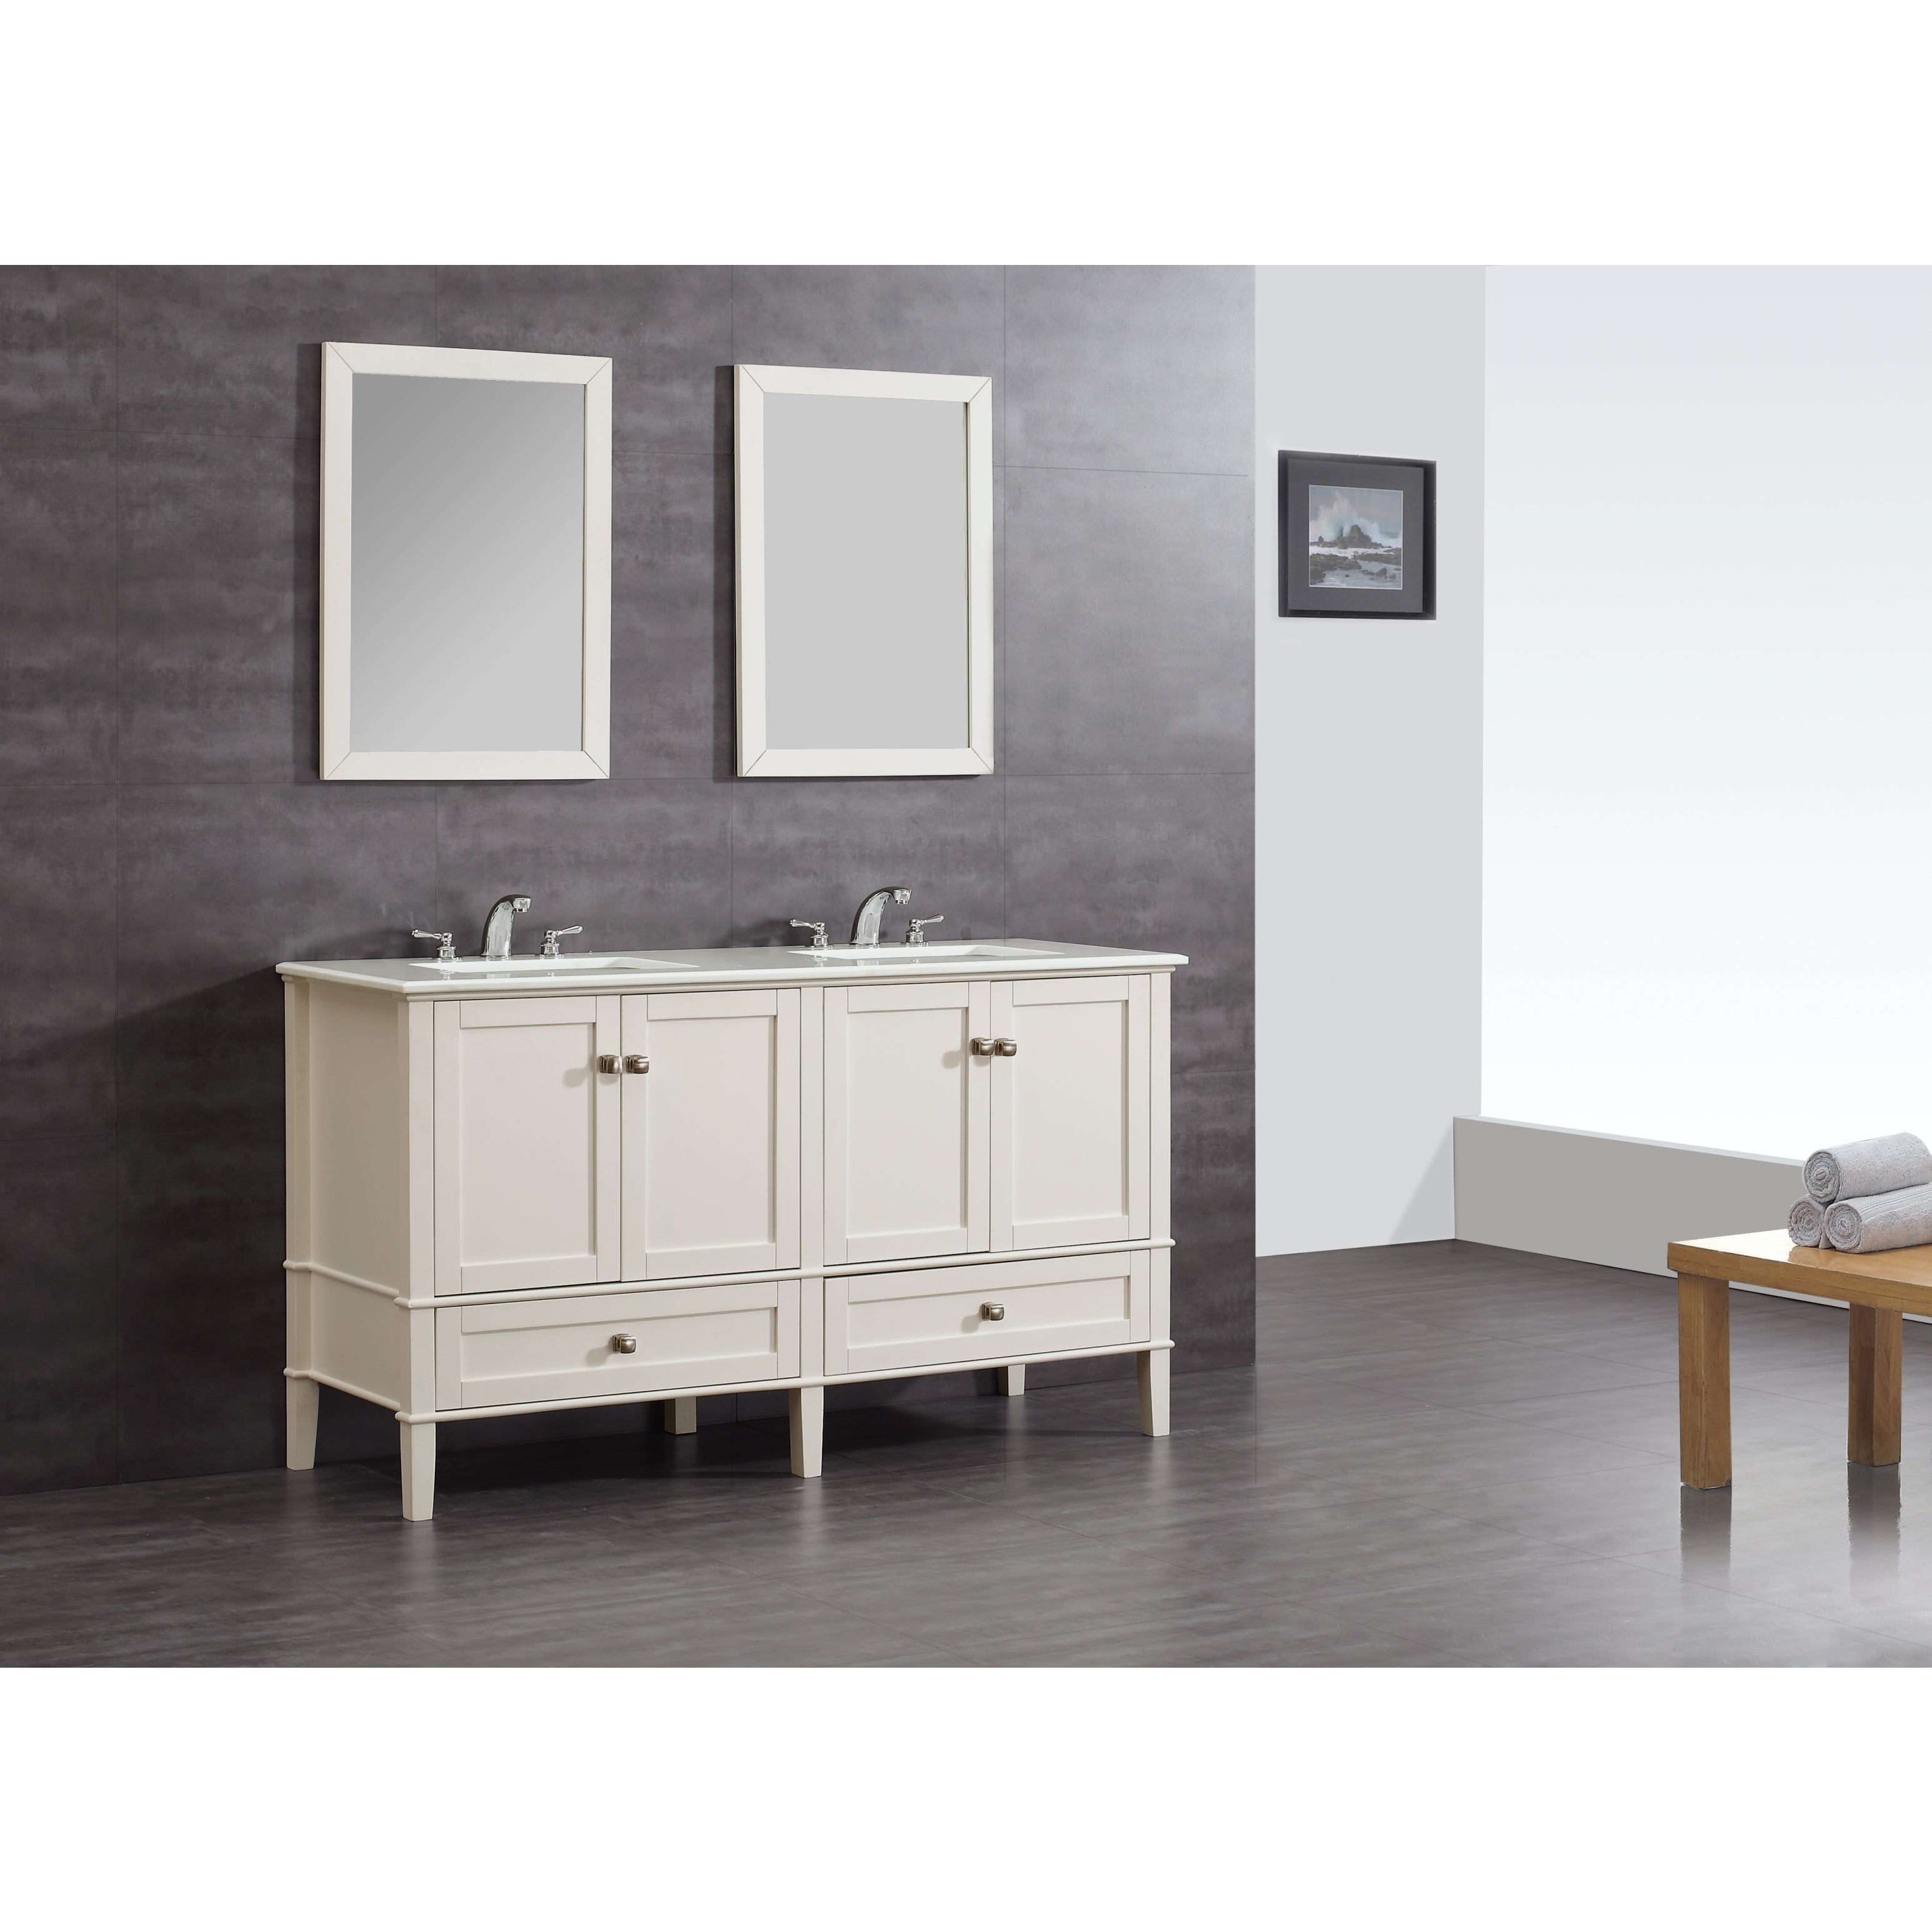 WyndenHall Windham Soft White 60-inch Bath Vanity Set at Sears.com